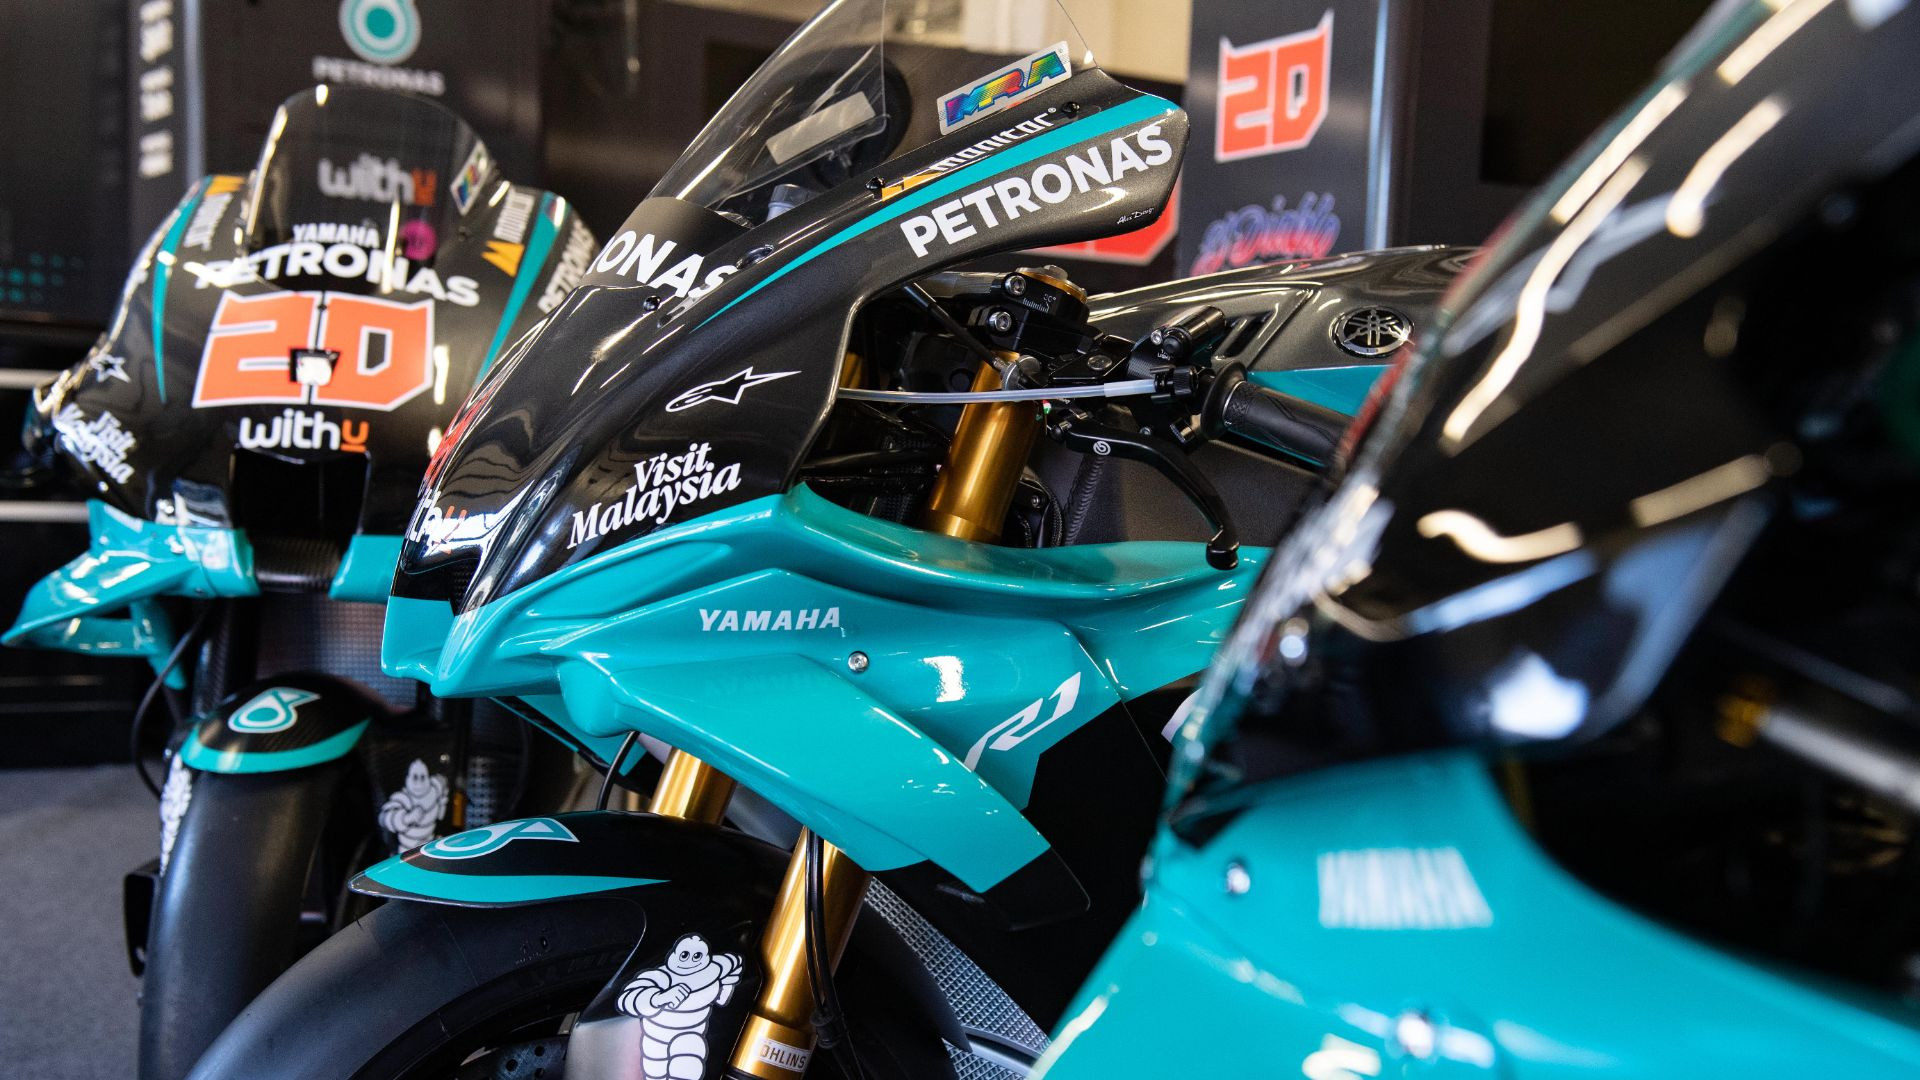 Petronas Replica Yamaha Yzf R1 Now Available Roadracing World Magazine Motorcycle Riding Racing Tech News